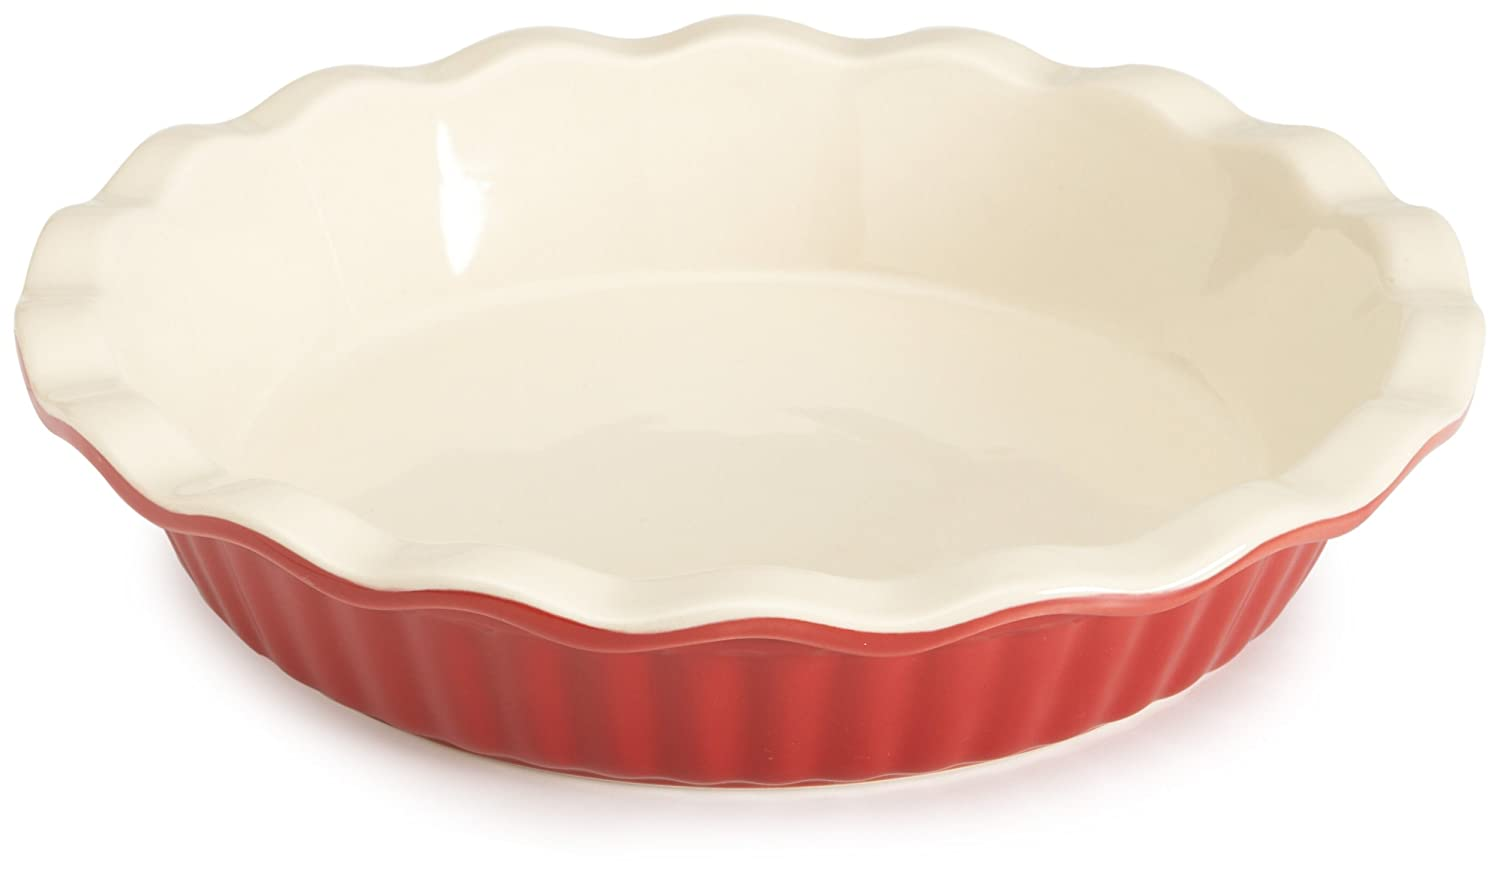 Amazon.com Good Cook 9 Inch Ceramic Pie Plate Red Pie Pan Kitchen \u0026 Dining  sc 1 st  Amazon.com & Amazon.com: Good Cook 9 Inch Ceramic Pie Plate Red: Pie Pan ...